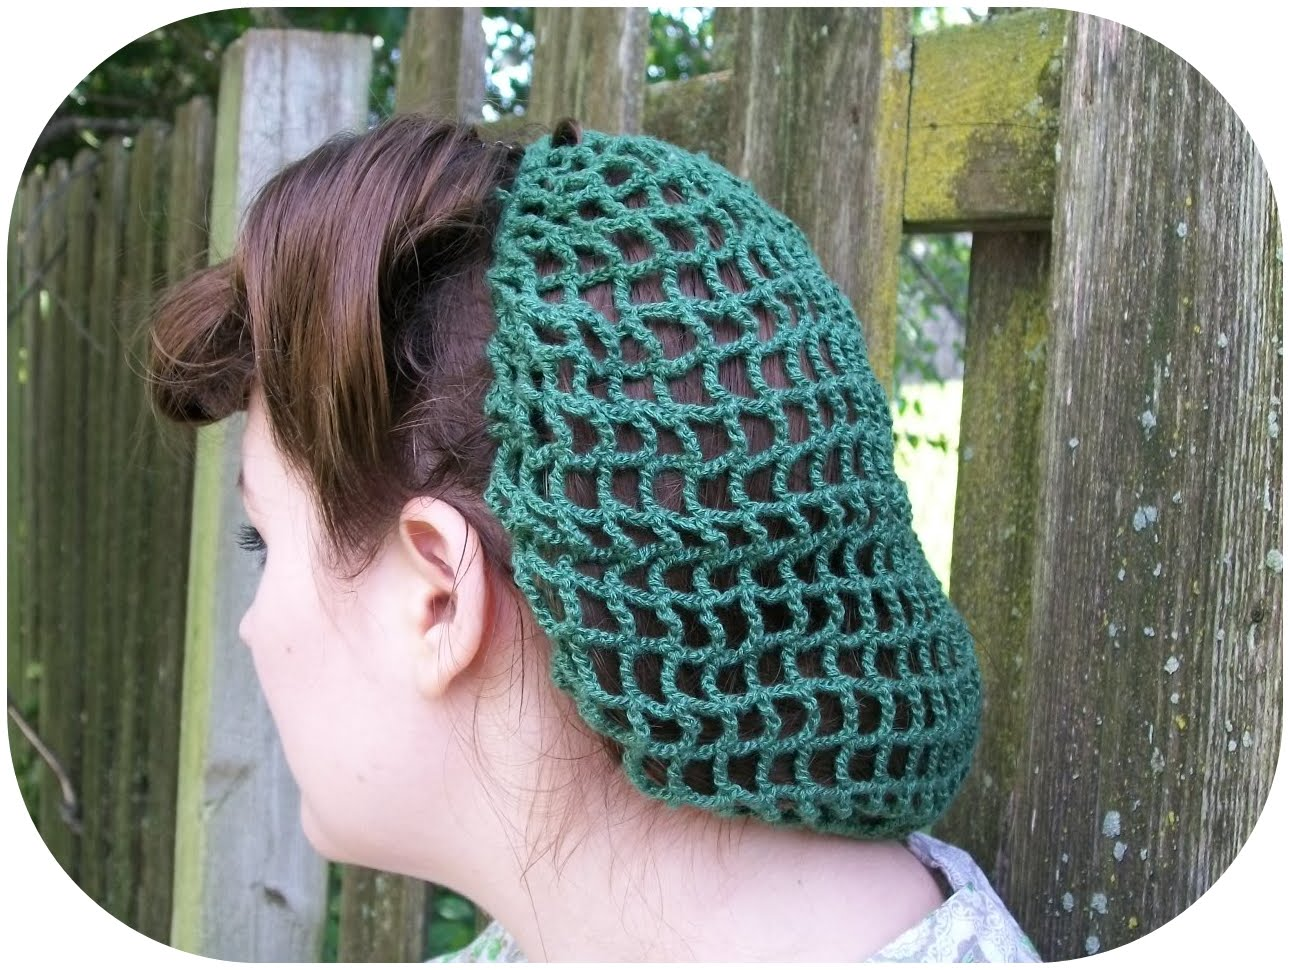 Crochet Patterns Free Snood : Free Crochet Snood Patterns ? Crochet Club